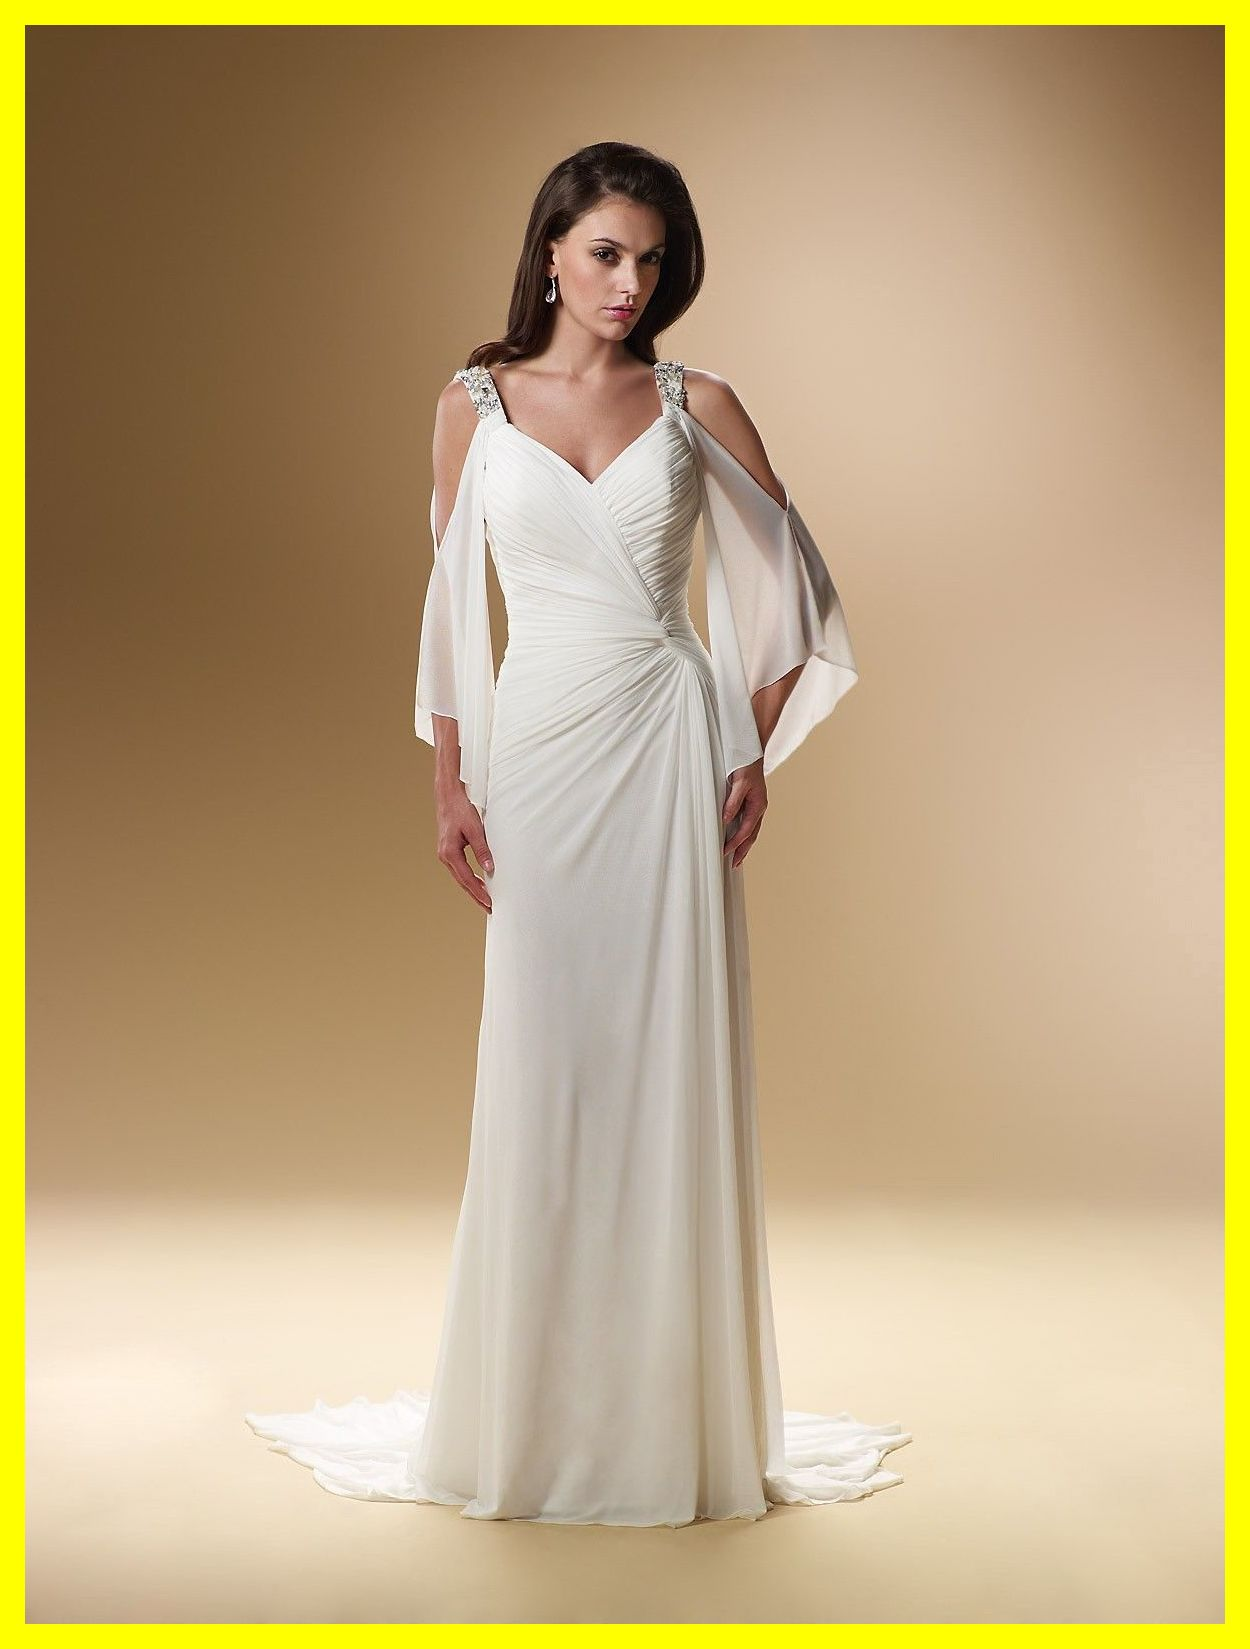 Guest Wedding Dresses Plus Size Casual To Hire White And